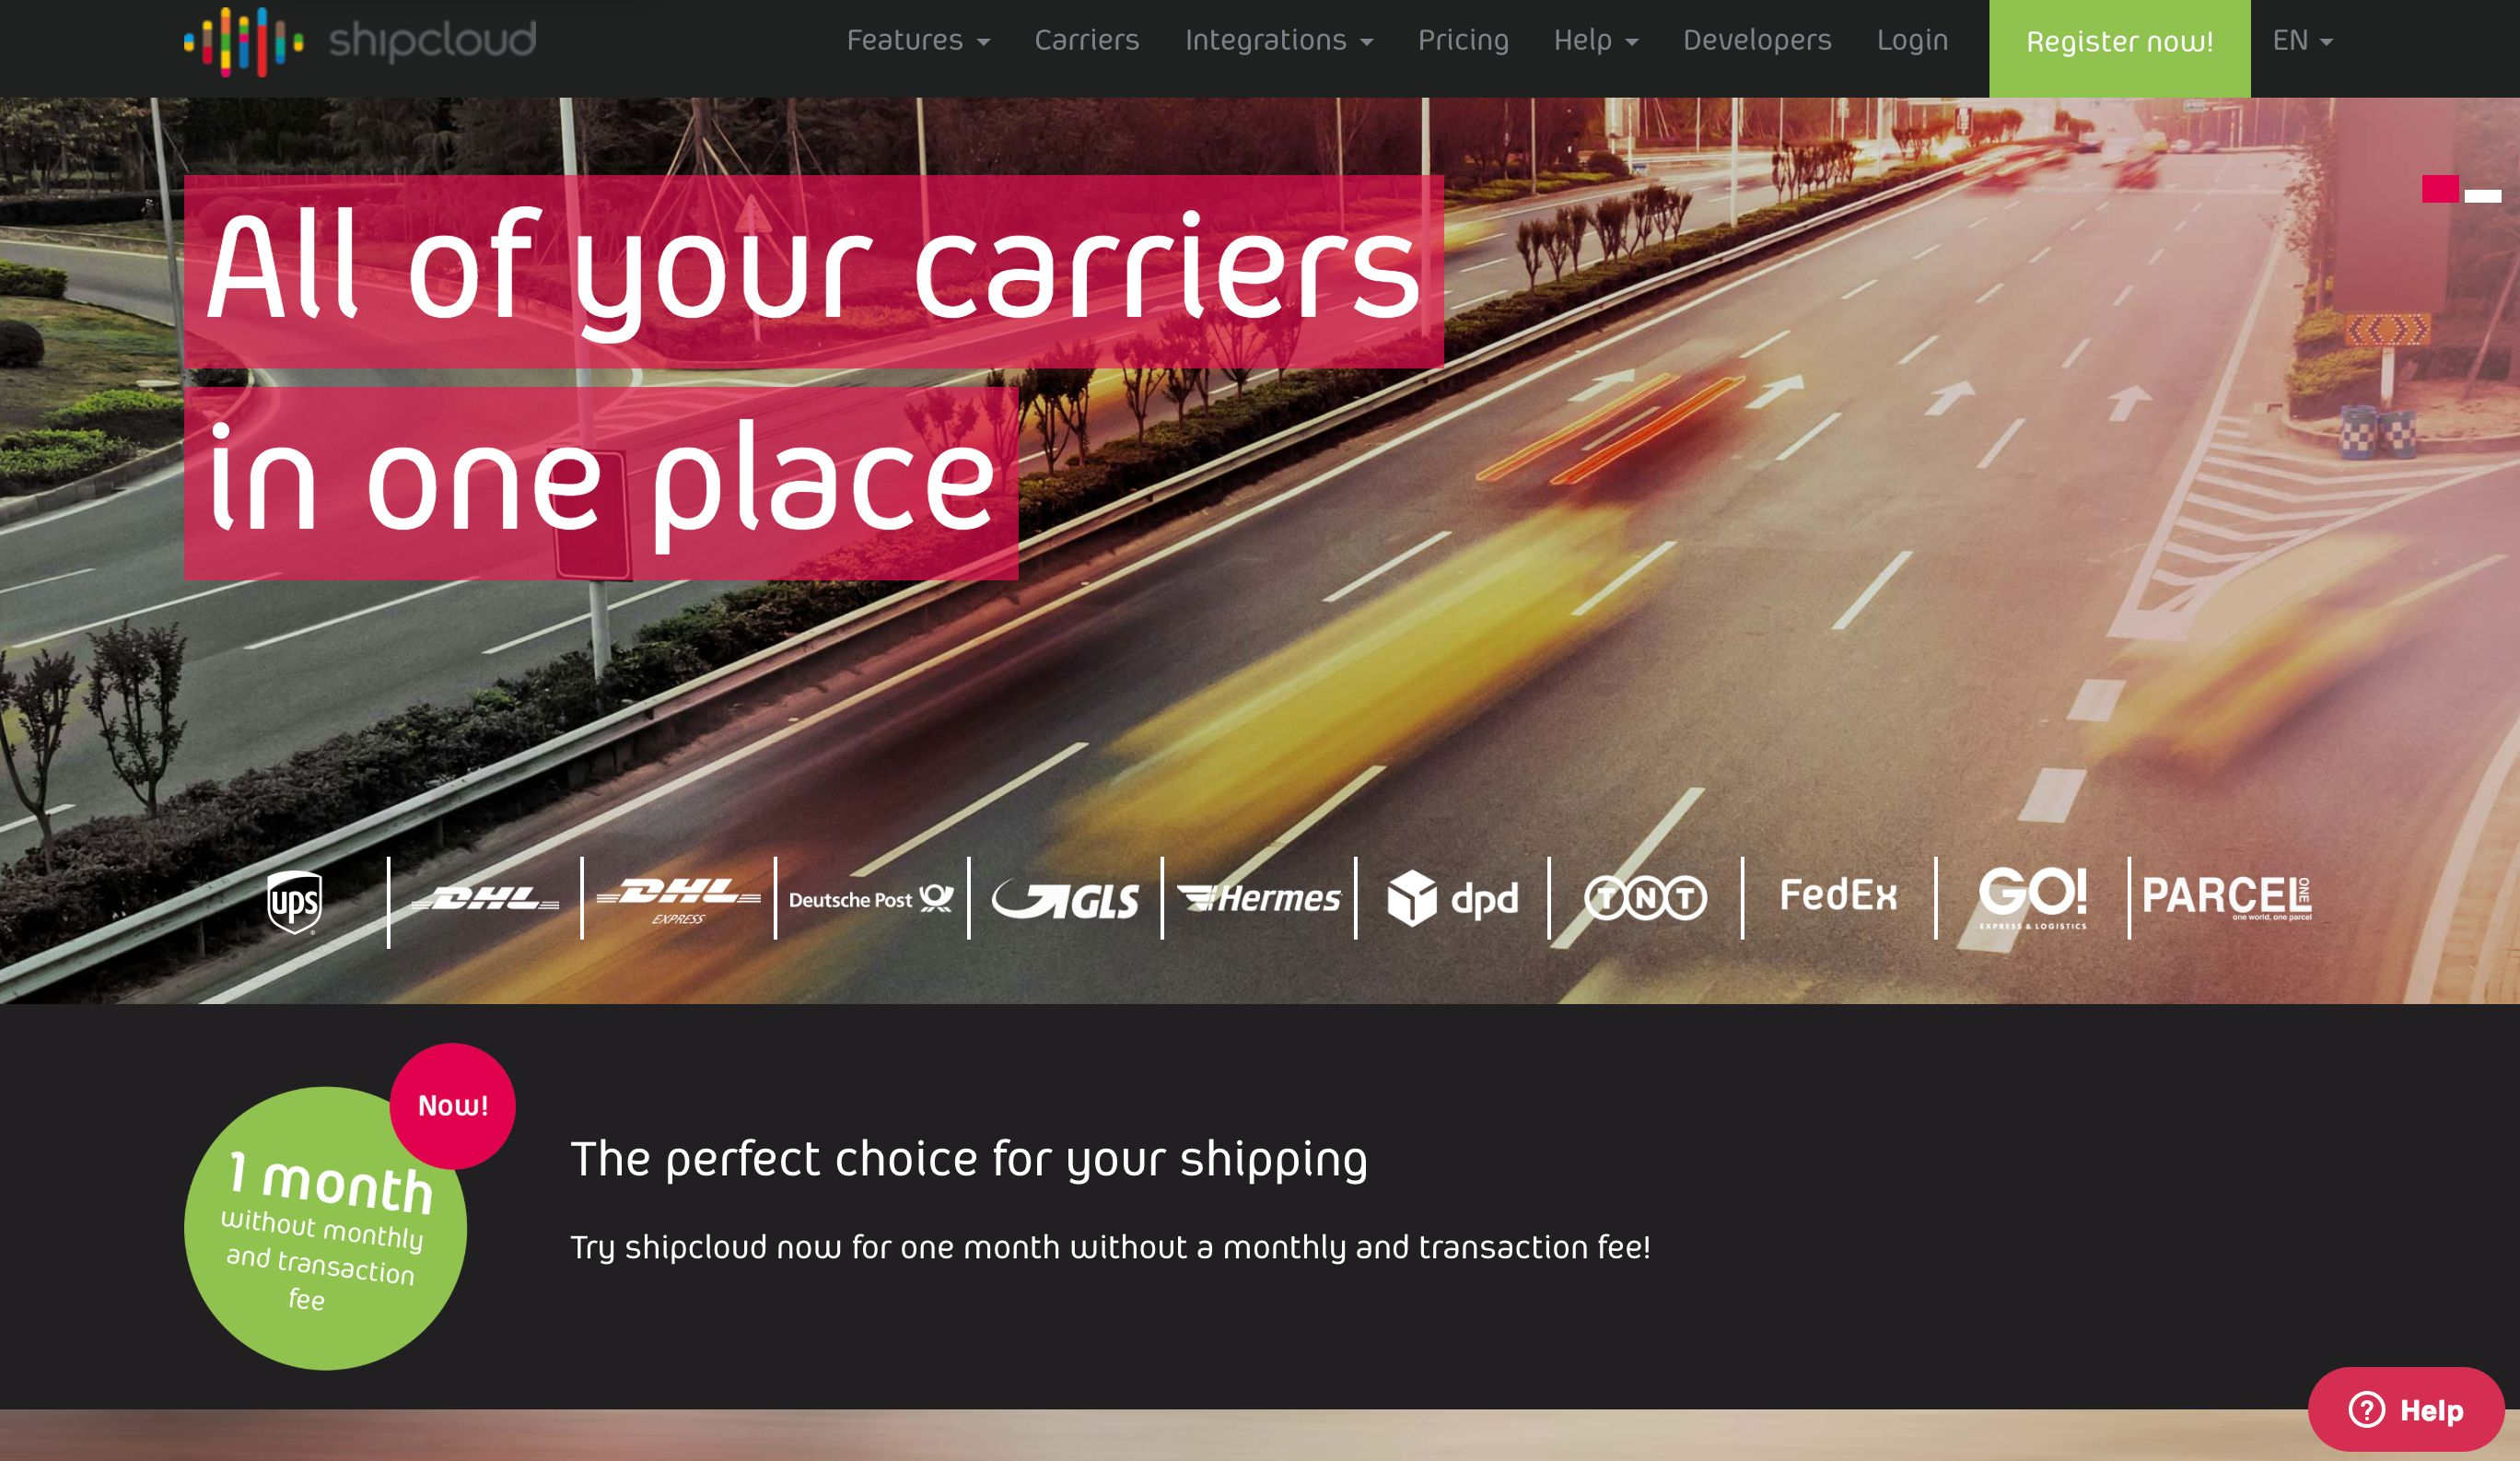 New Integration: Manage Your Shipments More Effectively with